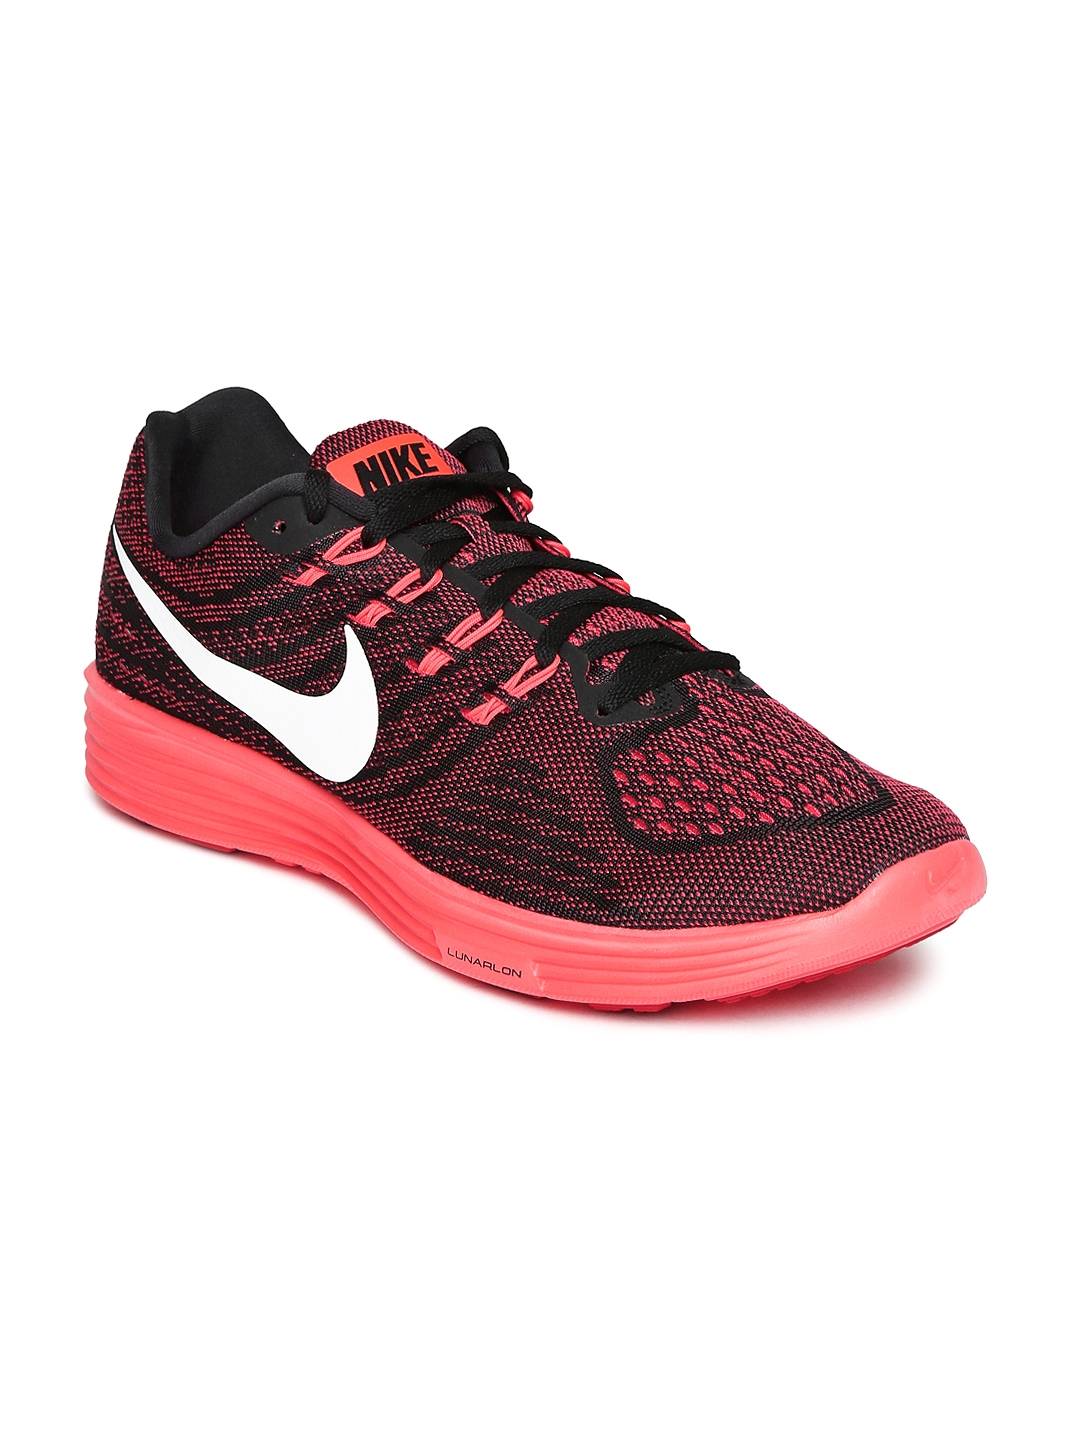 206903a87484 Buy Nike Men Pink   Black Lunartempo 2 Running Shoes - Sports Shoes ...